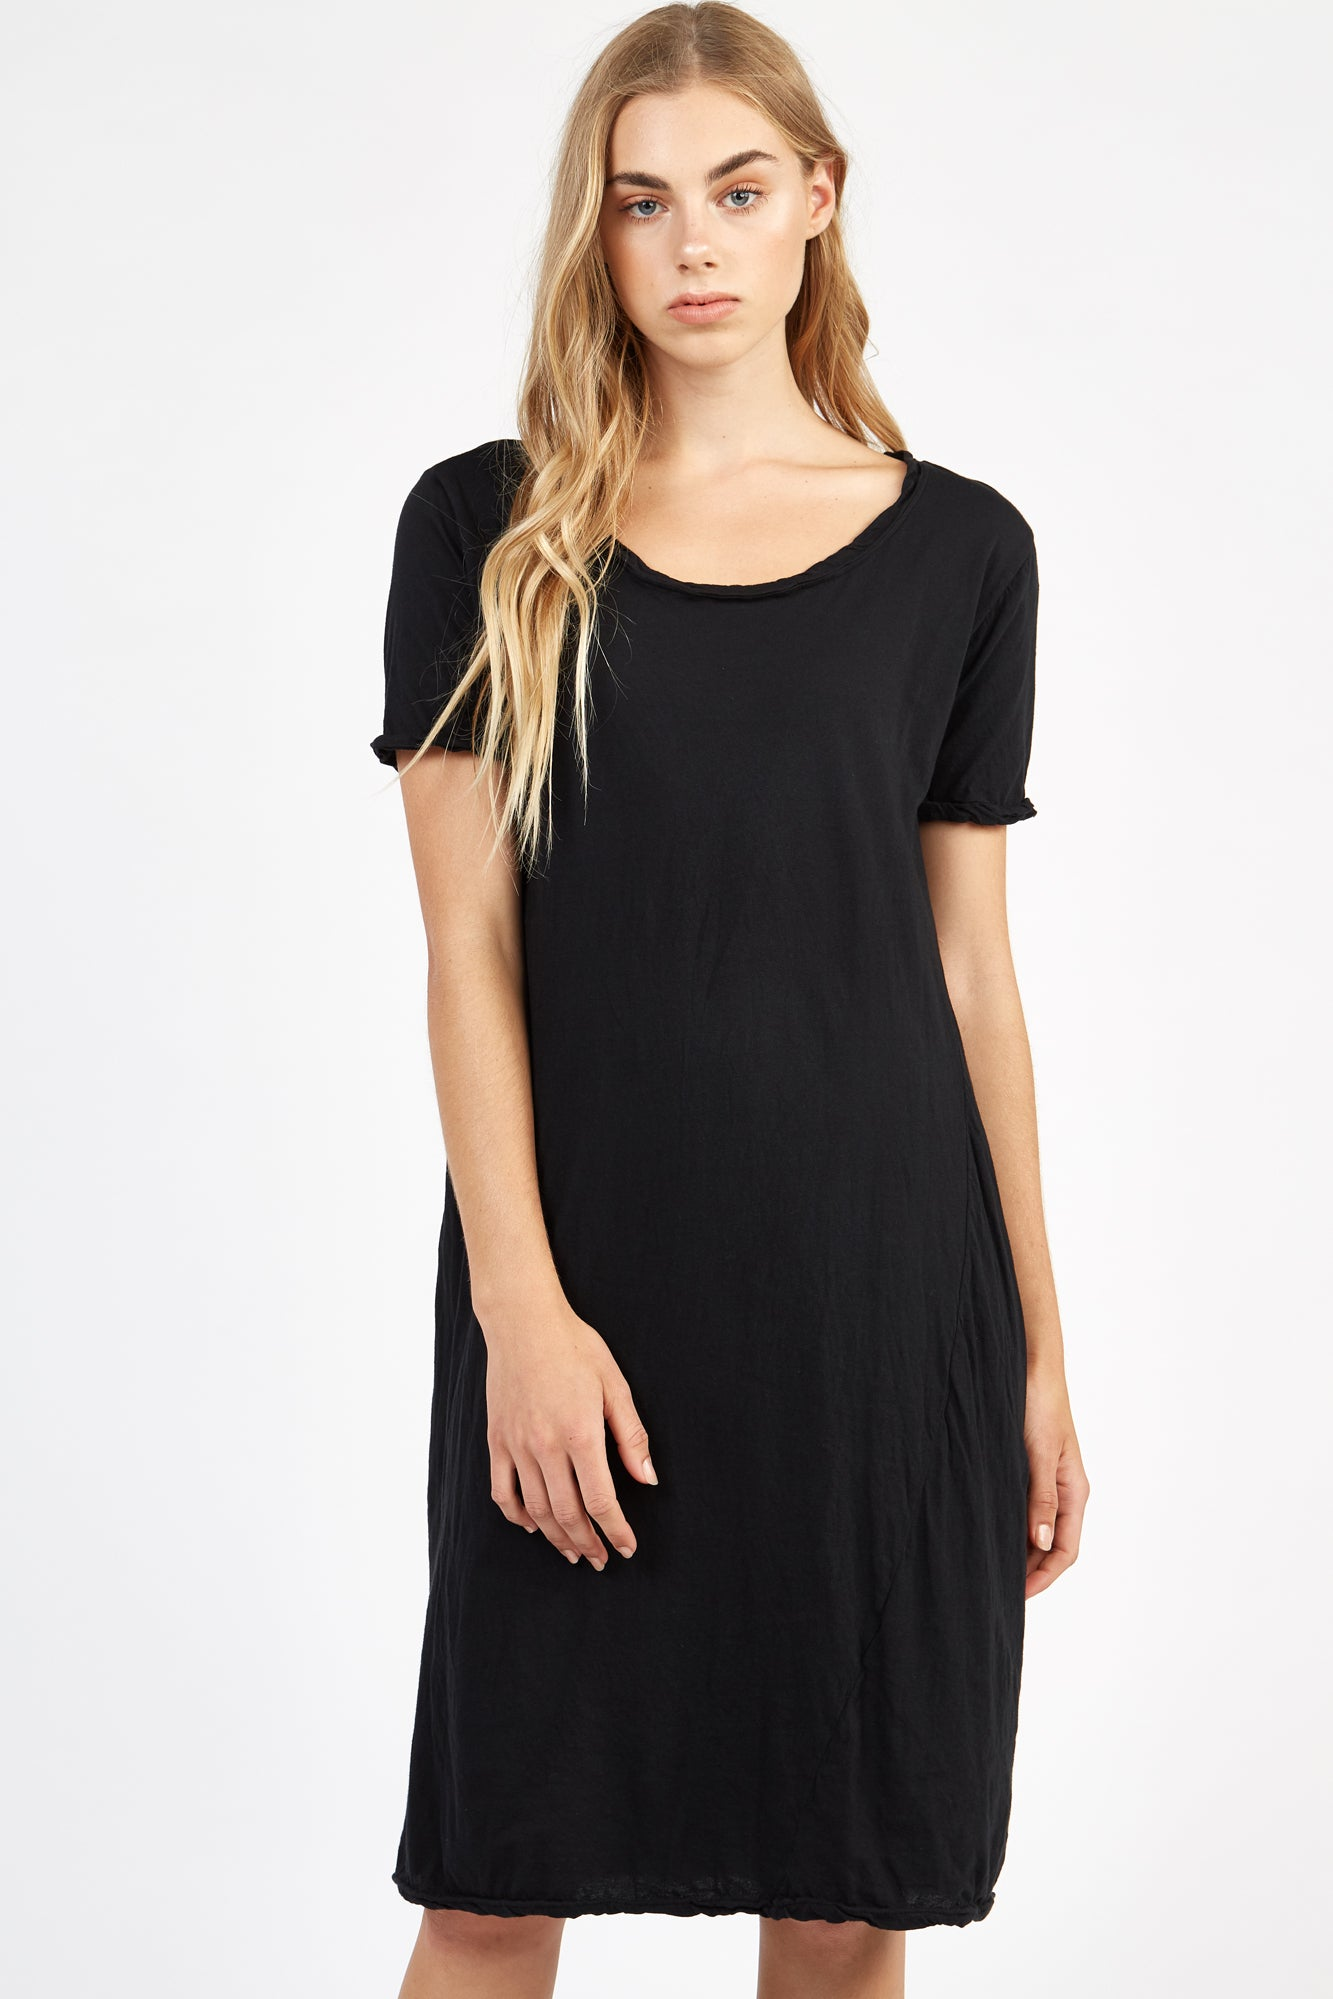 SCOOPED TEE DRESS - NOIR